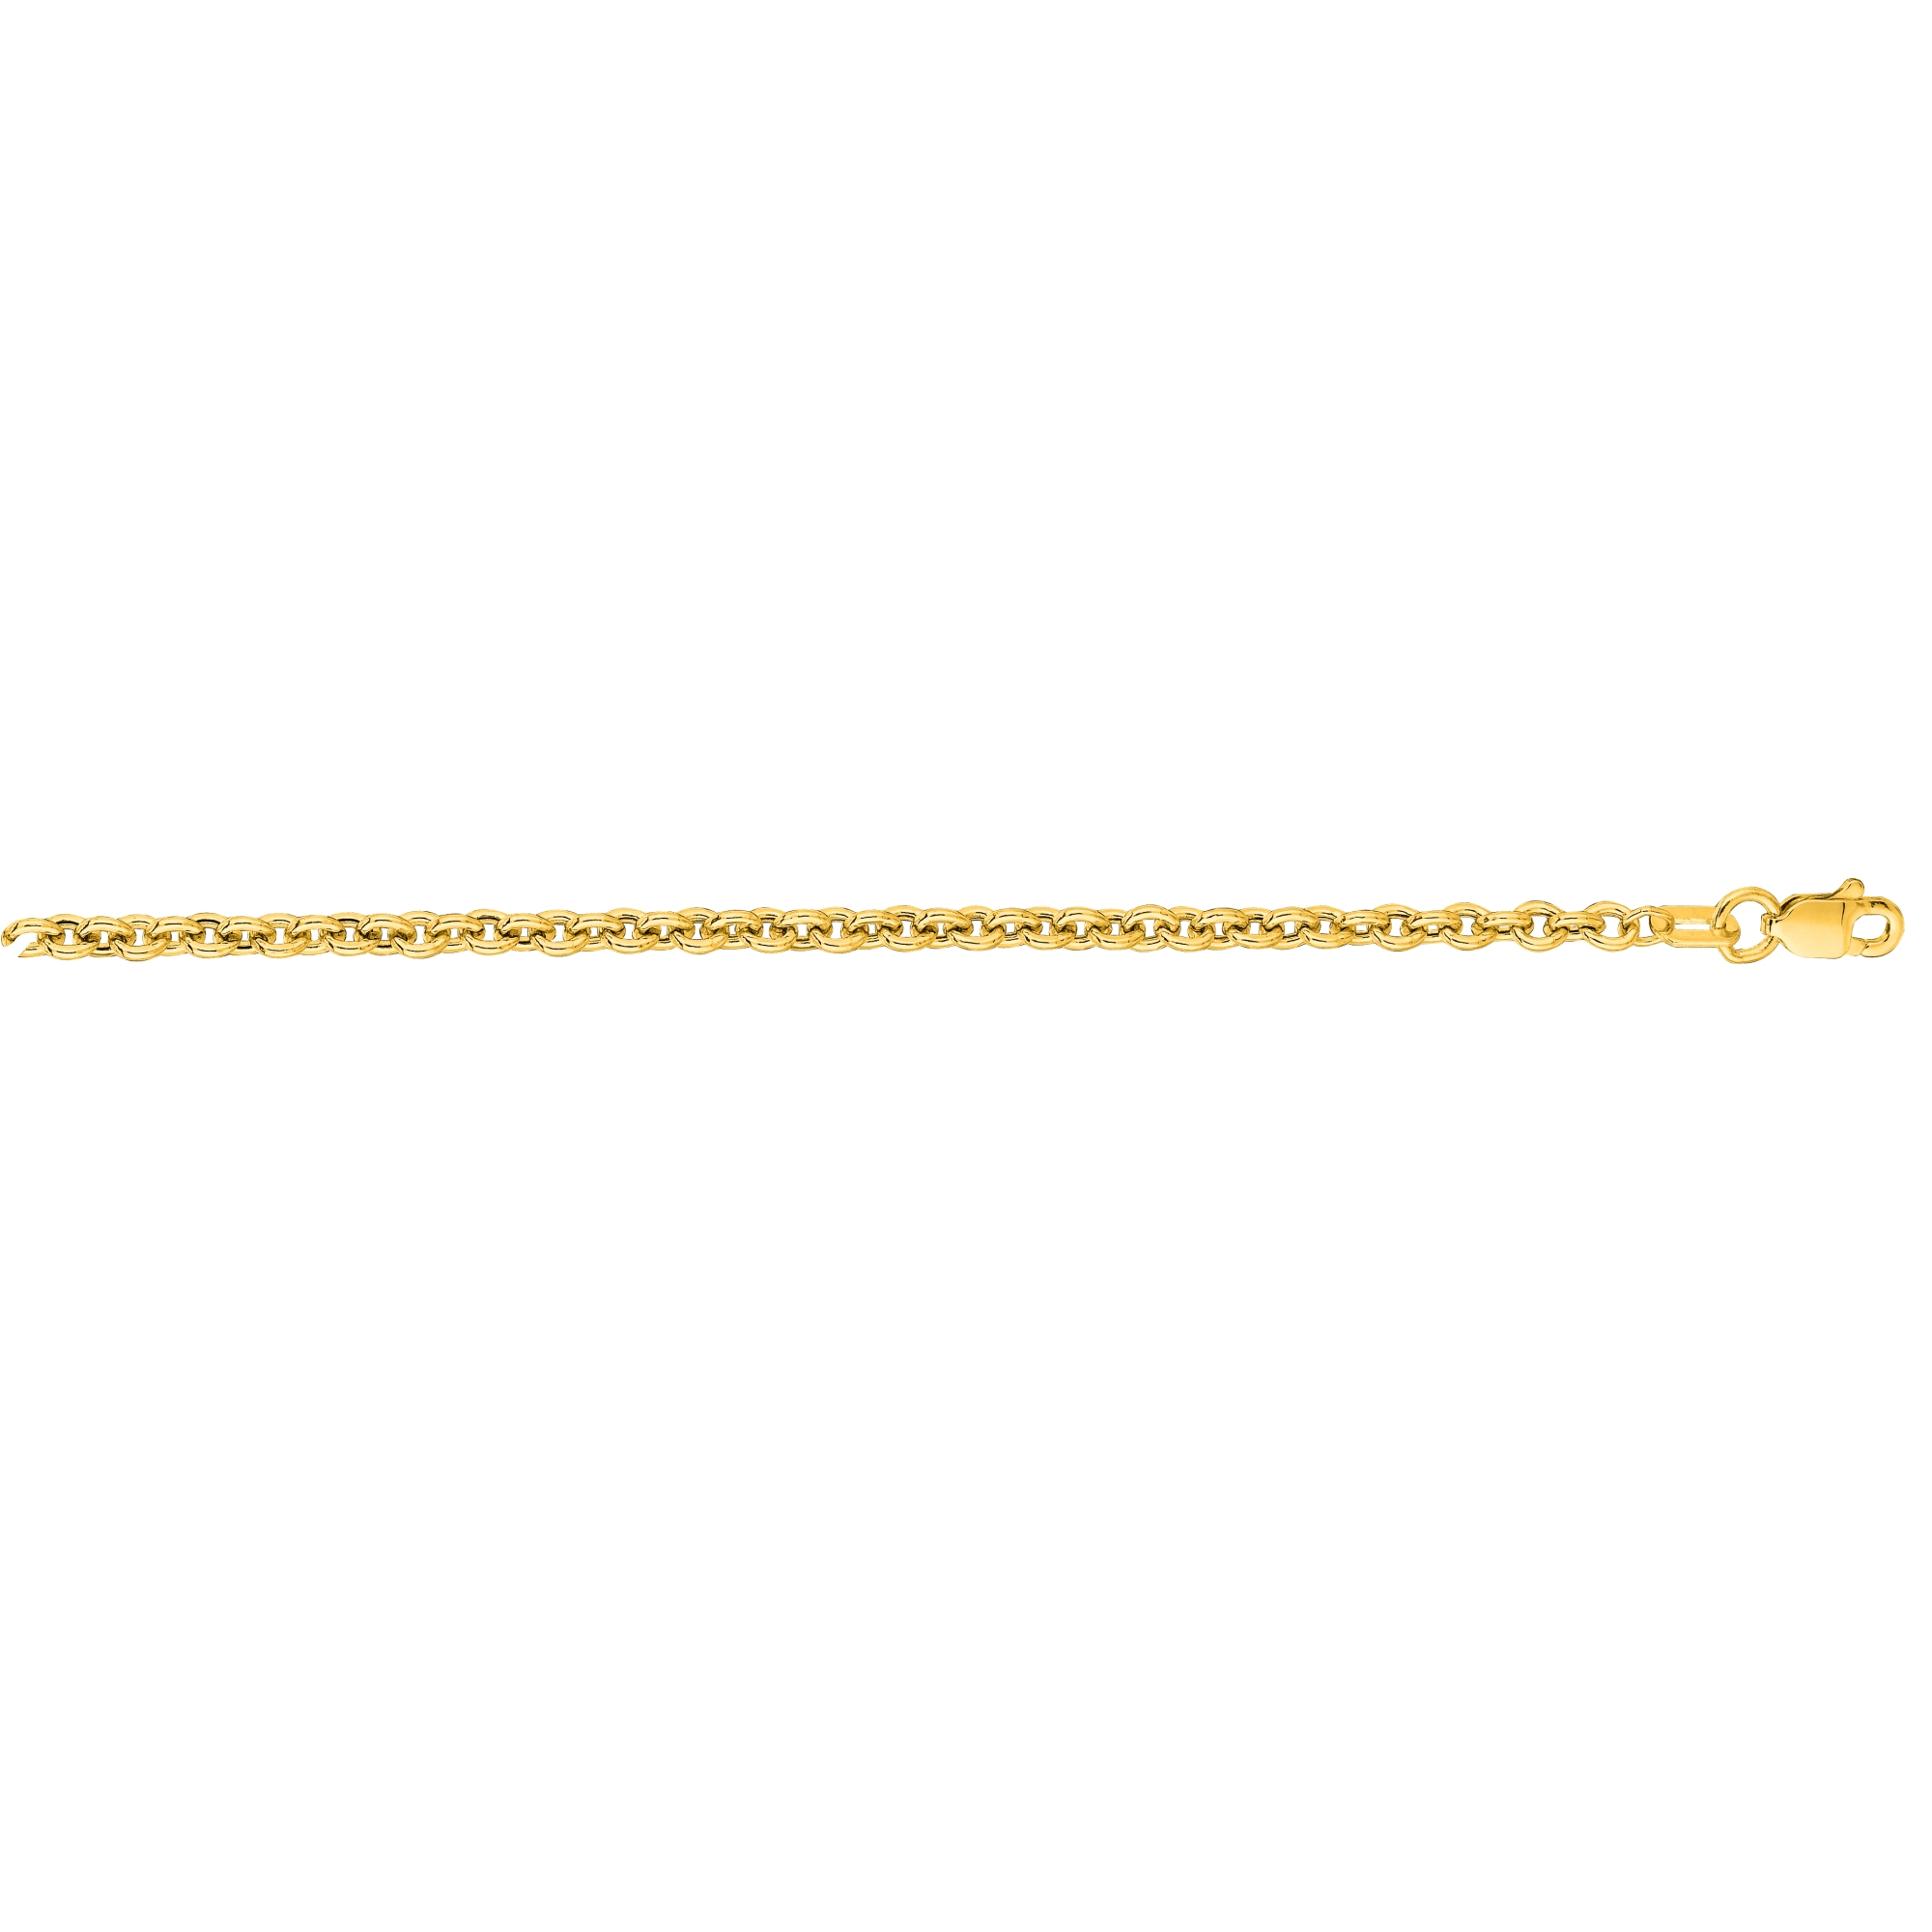 Hollow 14k Gold Forsantina Chain For Men & Women 3mm Wide Yellow Image